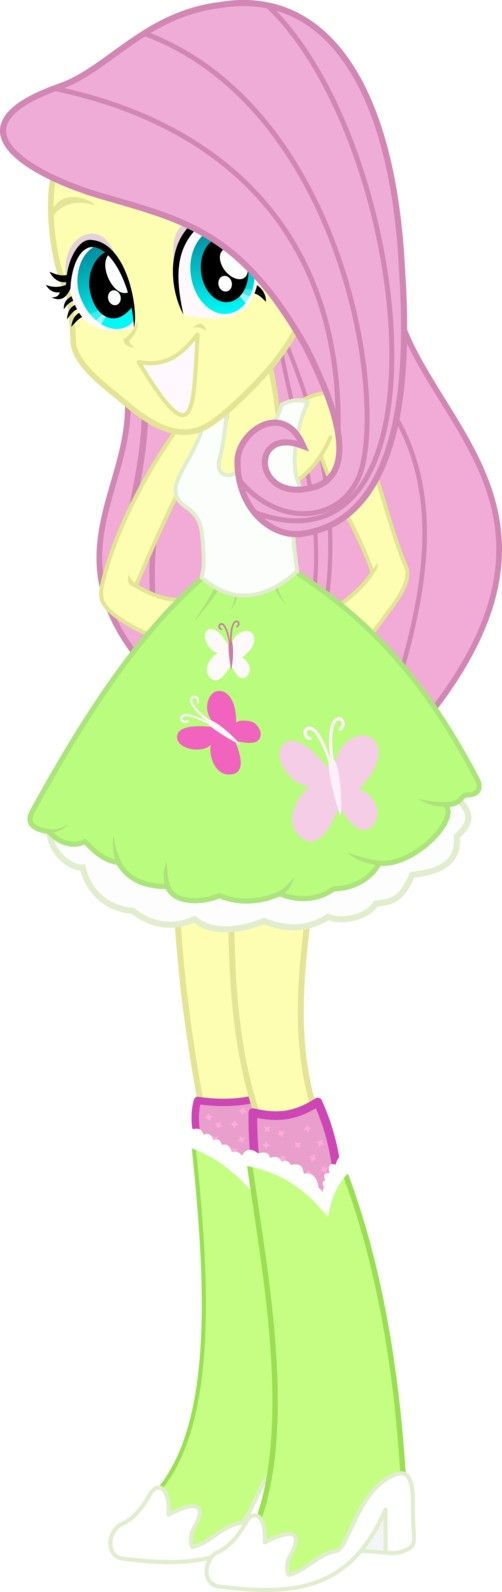 fluttershy from equestria girls